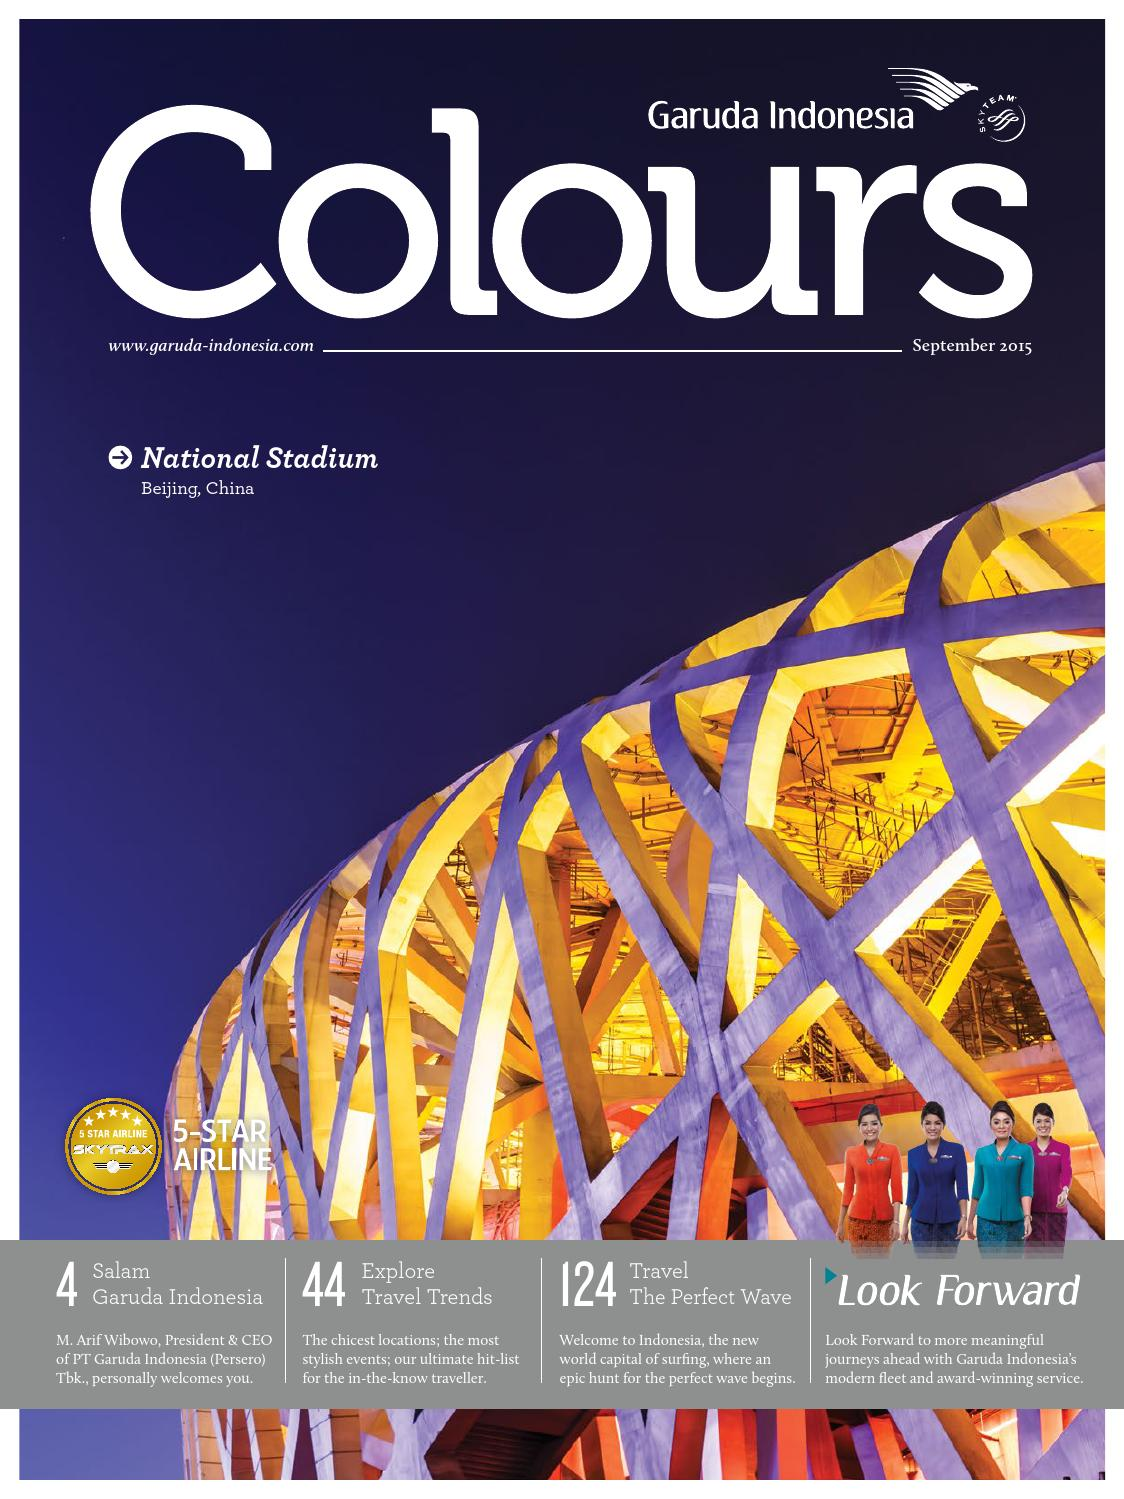 Colours Garuda Indonesia June 2015 by AGENCY FISH - issuu 99d4c45fdc